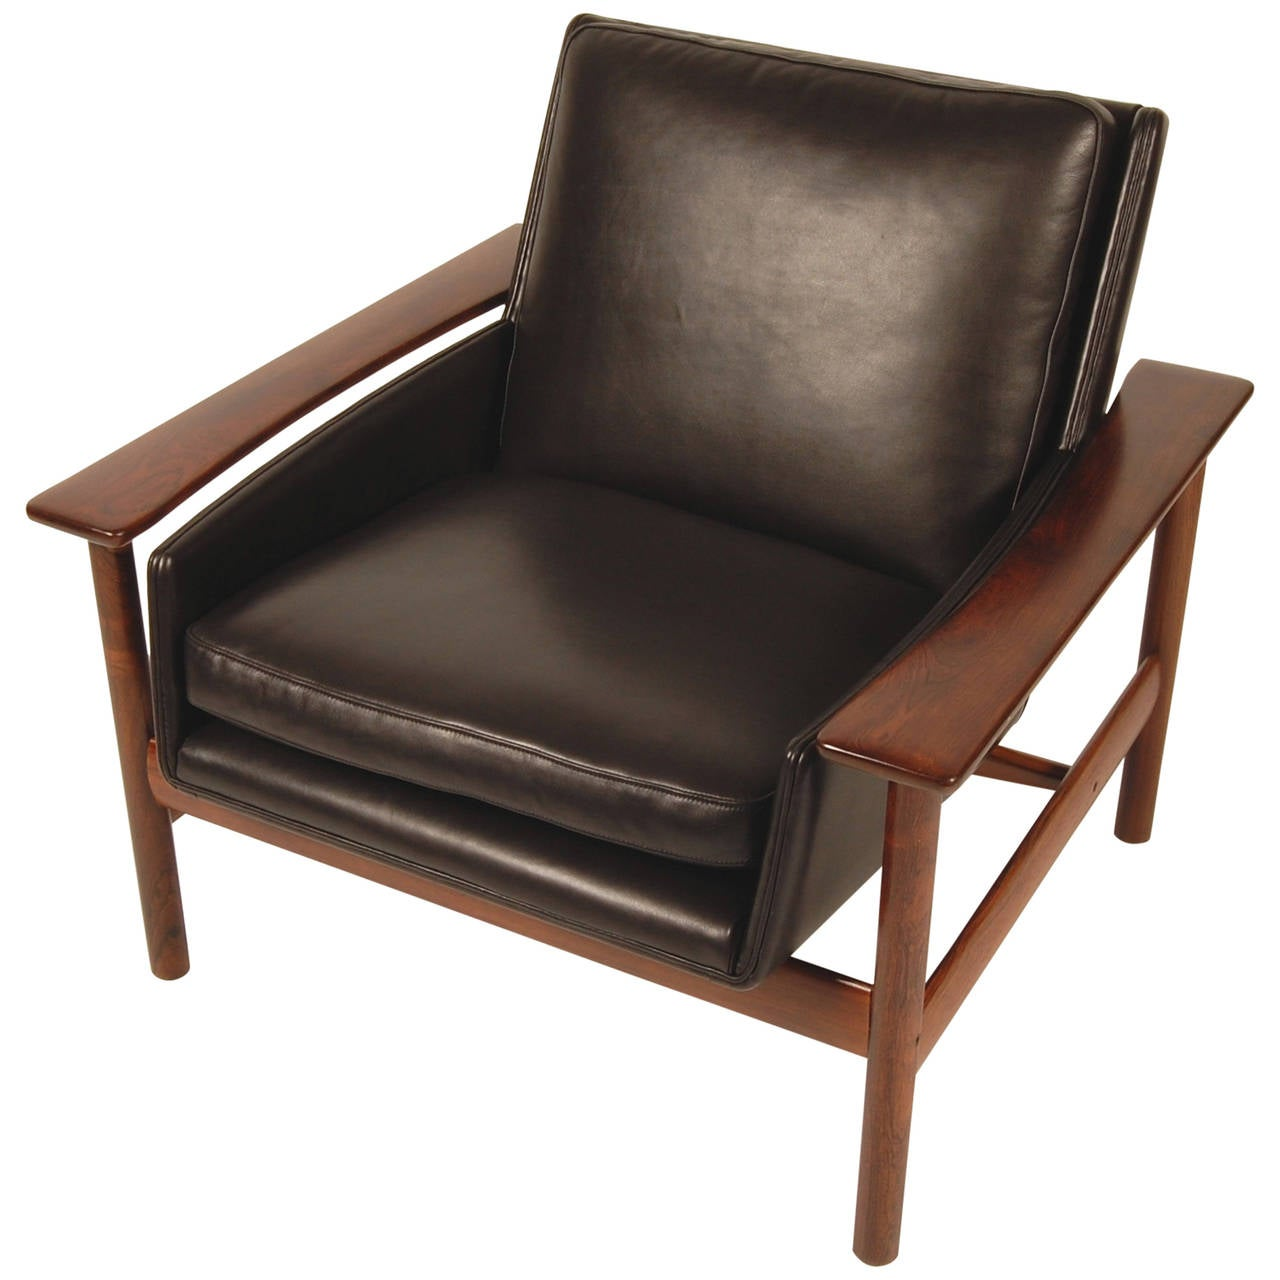 Dokka rosewood and leather lounge chair scandinavia modern for Modern leather club chair